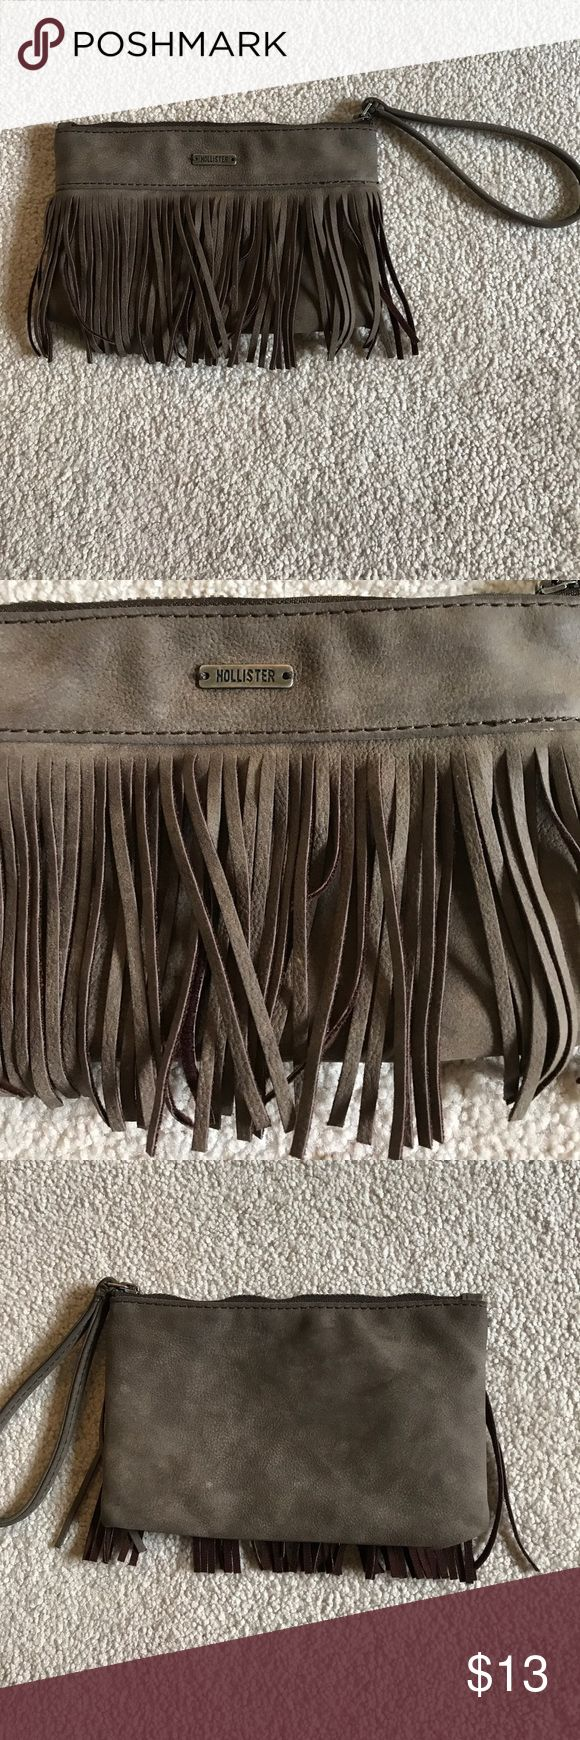 Hollister wristlet wallet This is a cute, brown/dark tan suede fringed wristlet purse/wallet from Hollister. Never used!! Perfect condition. Feel free to make an offer! Hollister Bags Clutches & Wristlets